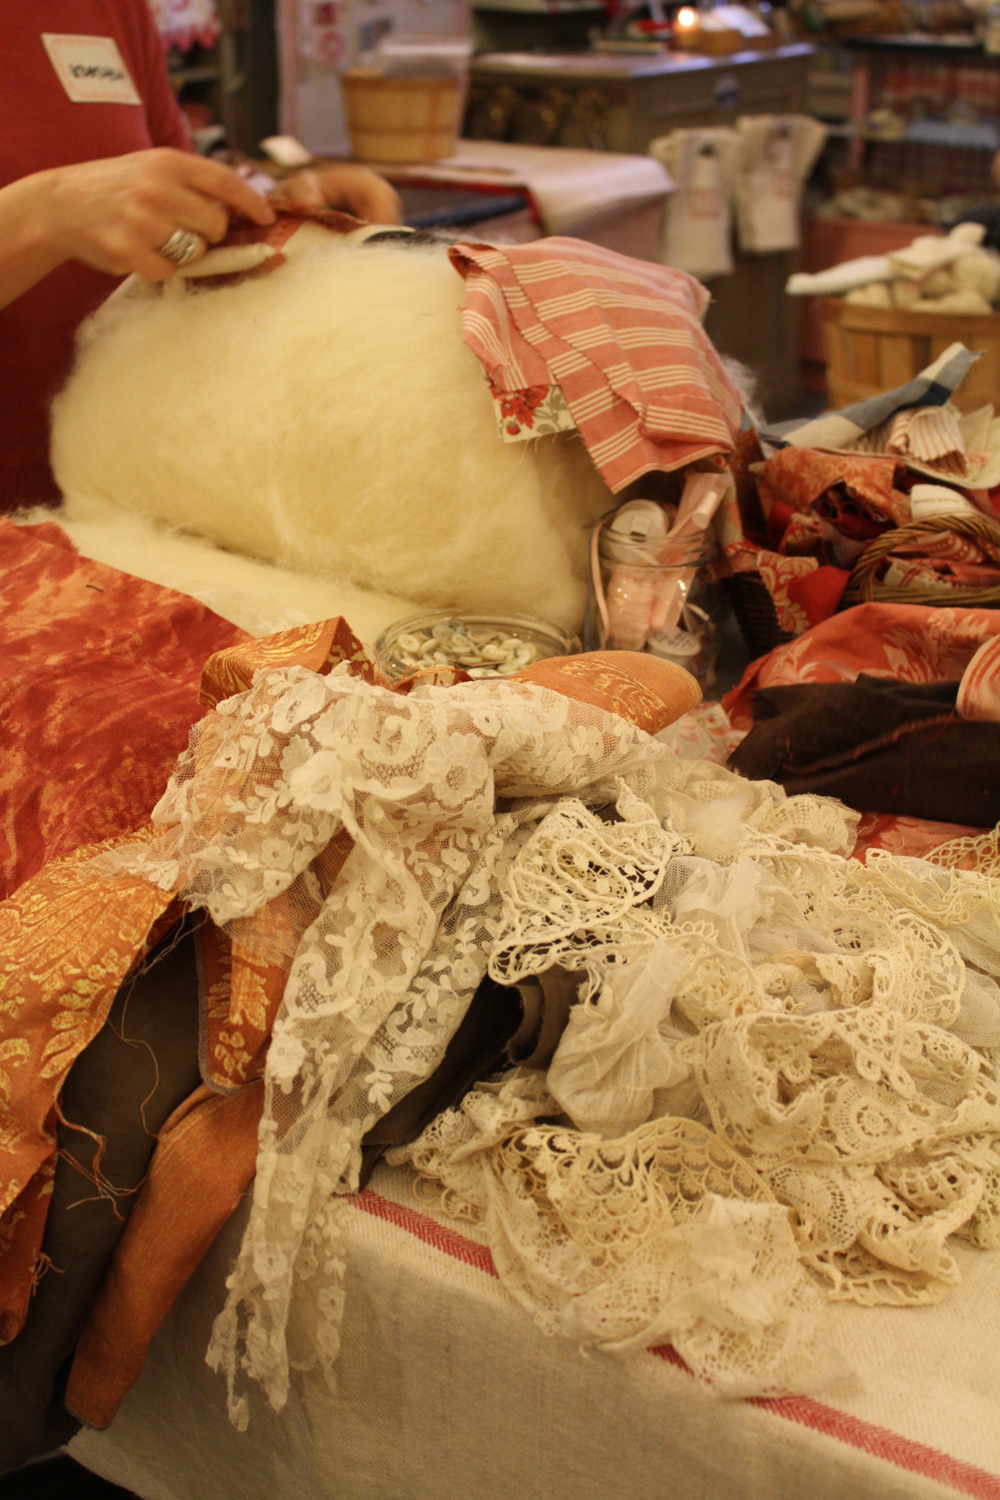 We had so many vintage and antique textiles to choose from